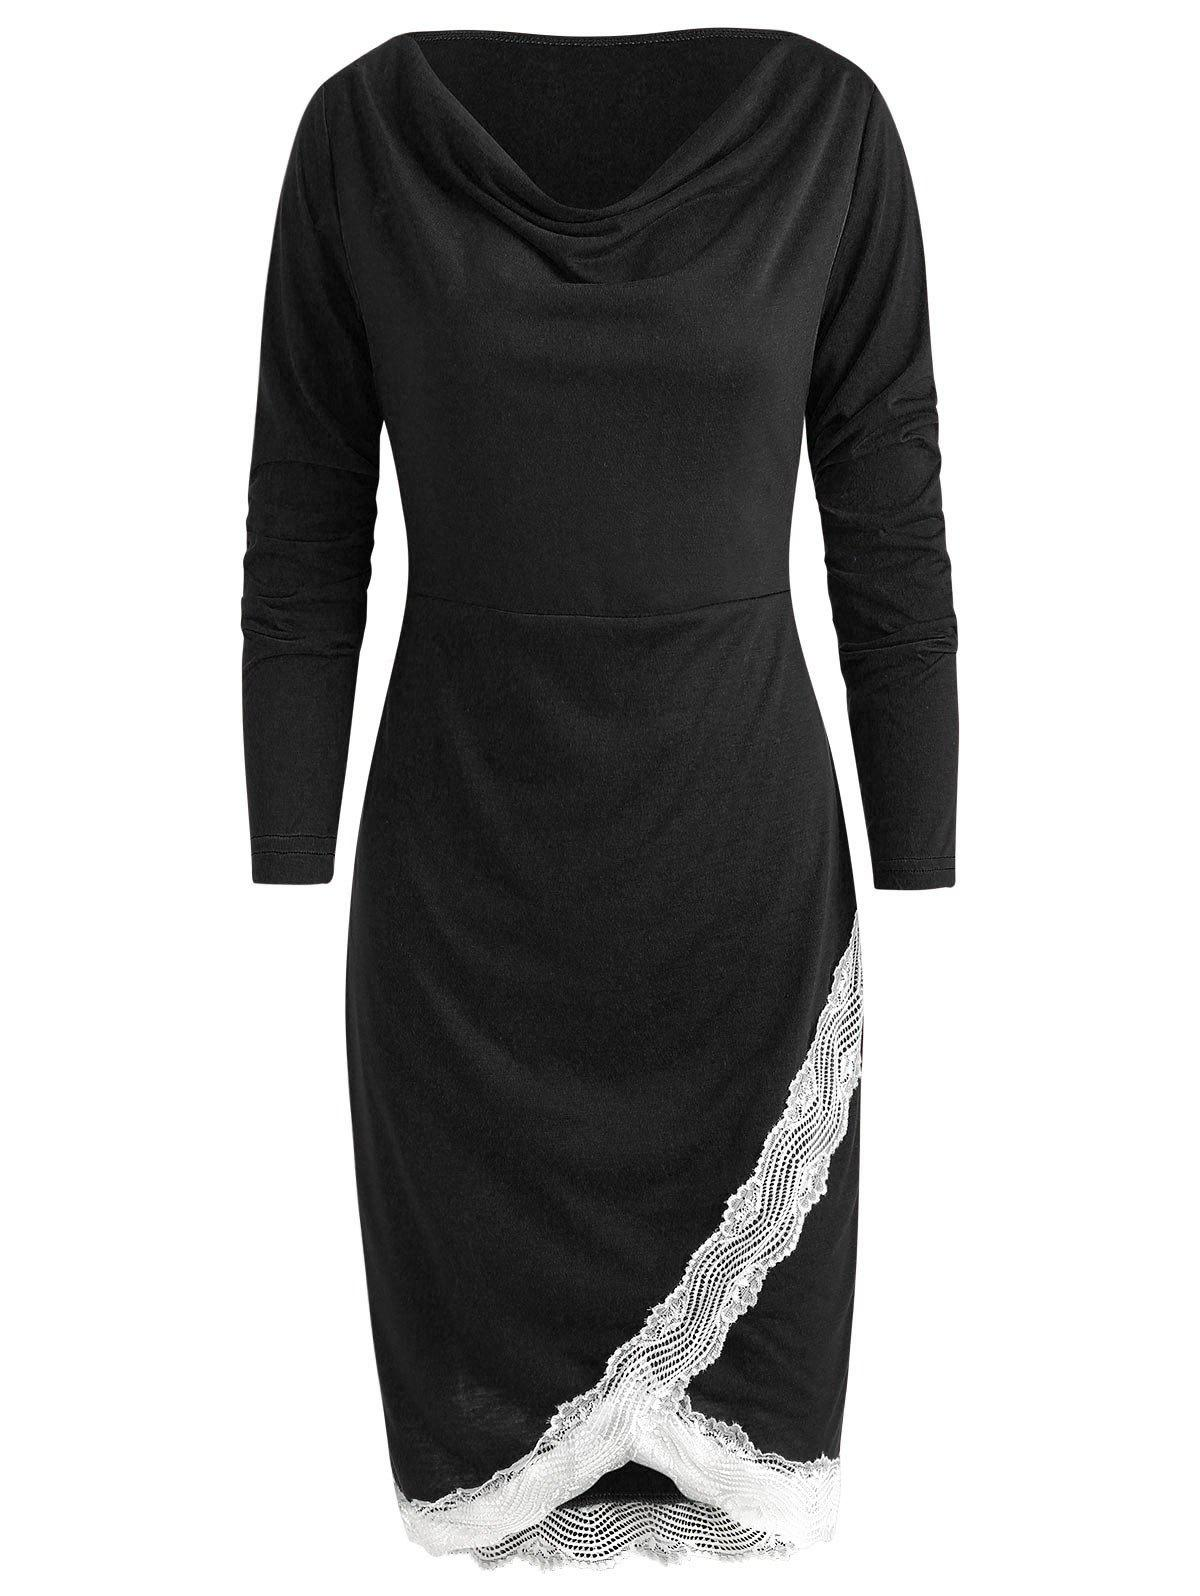 Lace Trim Sheath Dress - BLACK XL